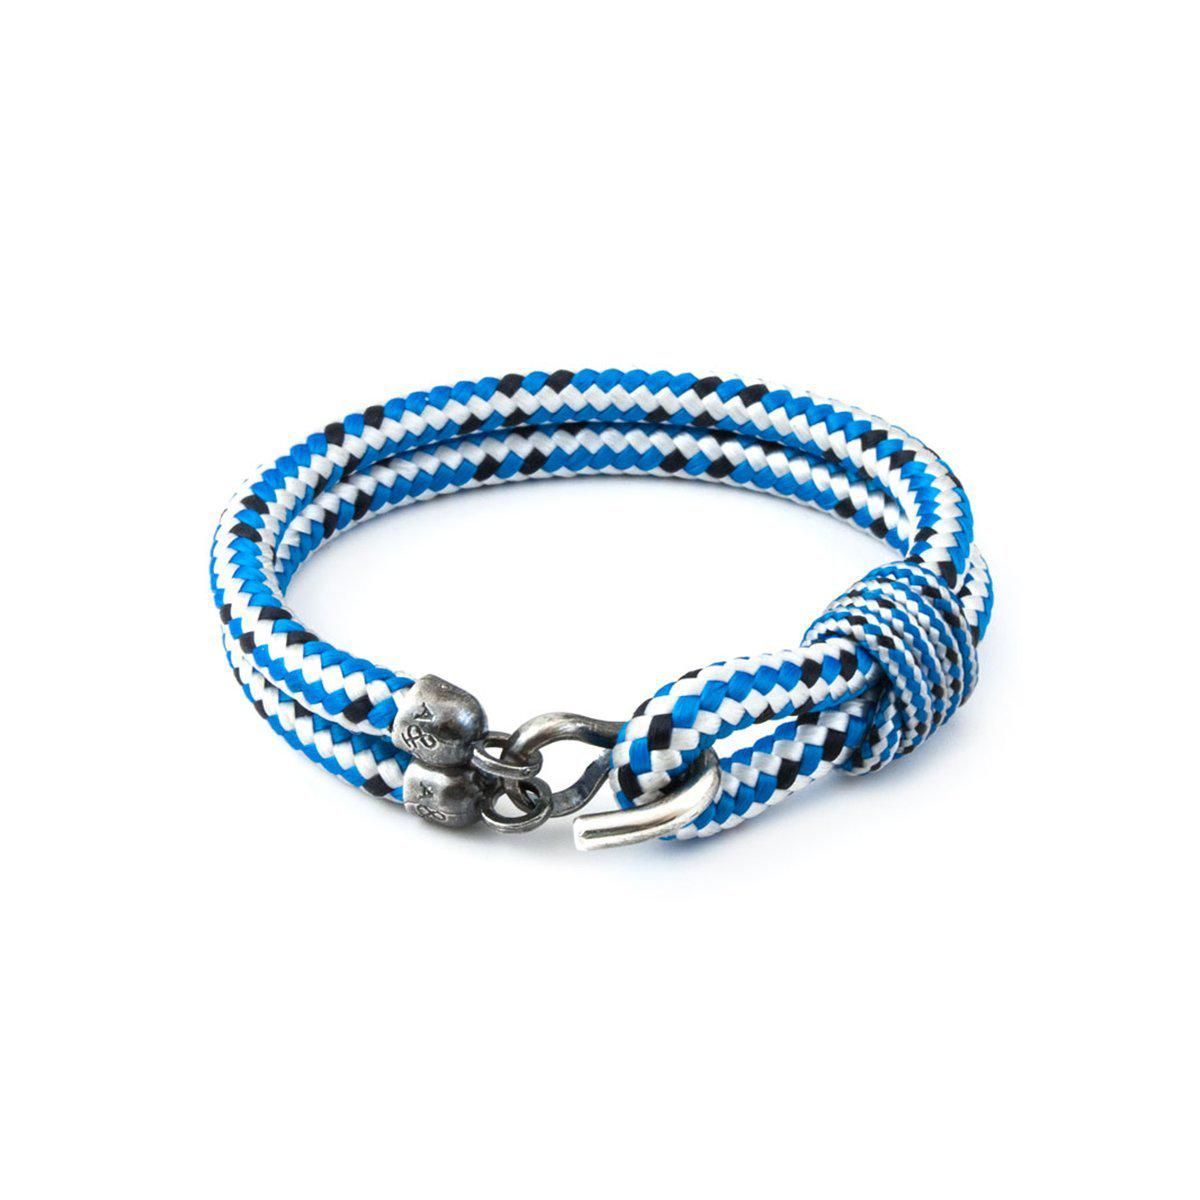 Anchor & Crew Blue Dash Liverpool Silver And Rope Bracelet - 21cm (most popular) IgbpodU